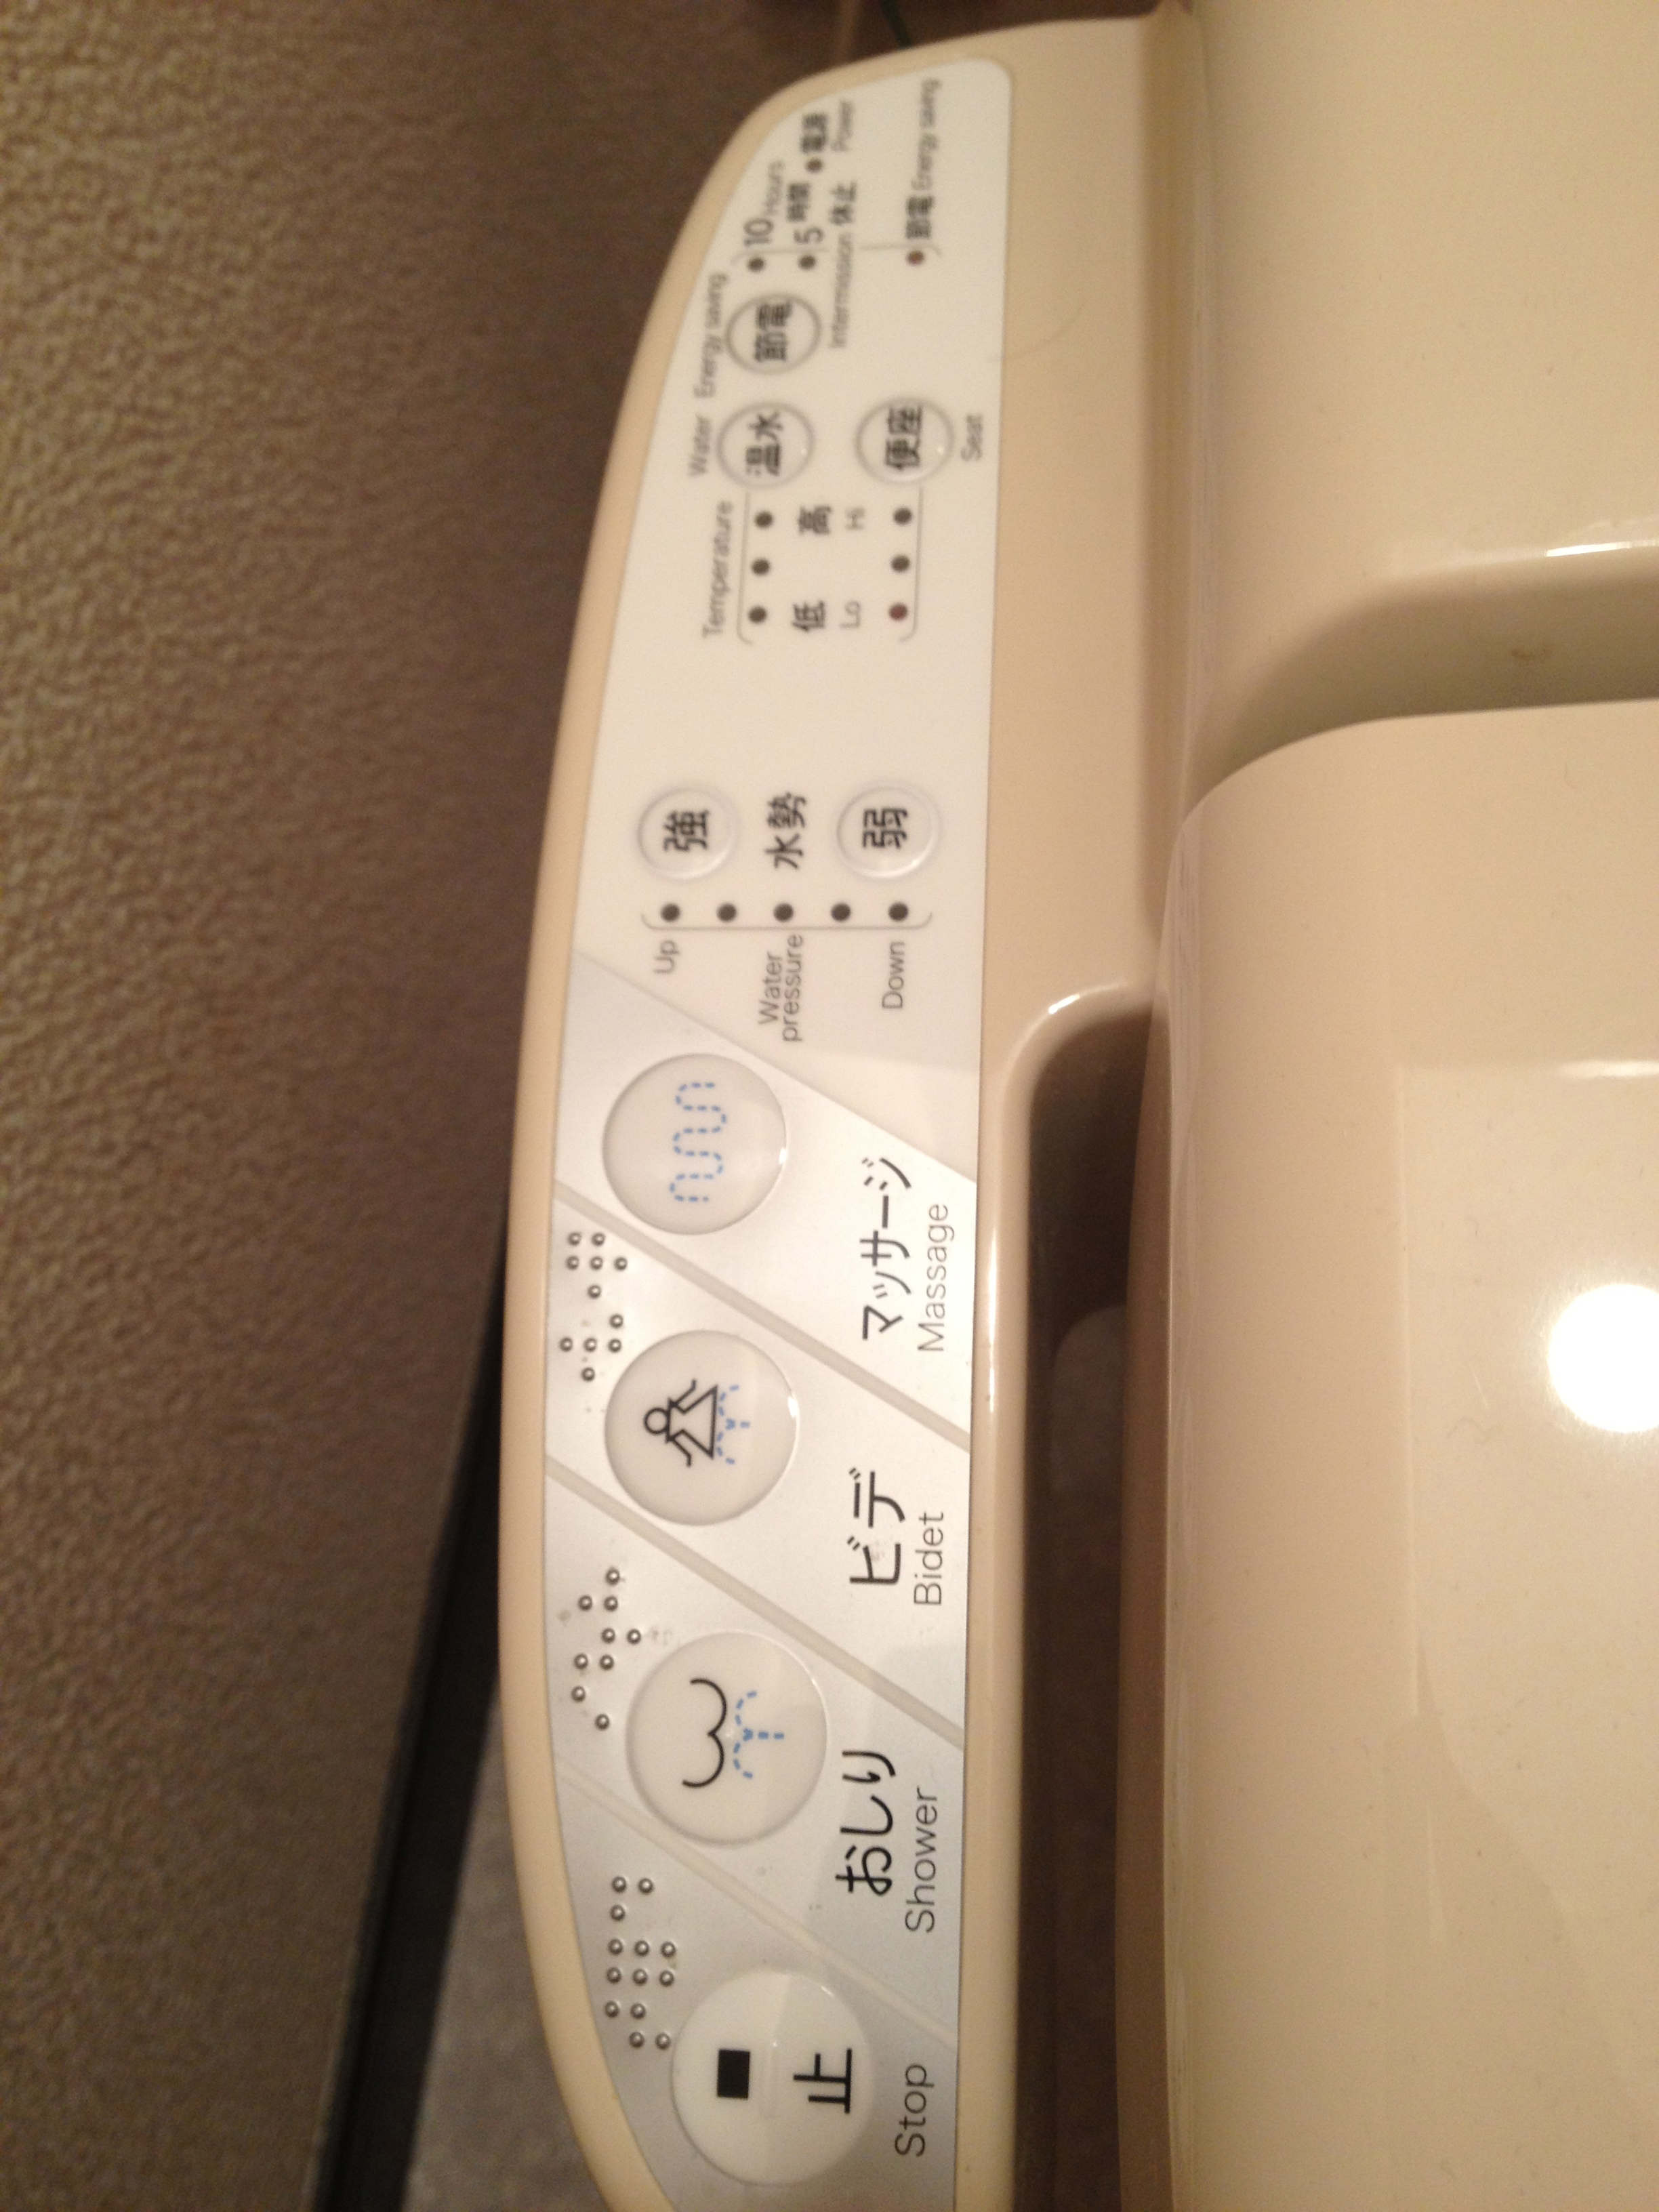 Japanese Toilets: From Squatting to Robotic | IntrovertJapan